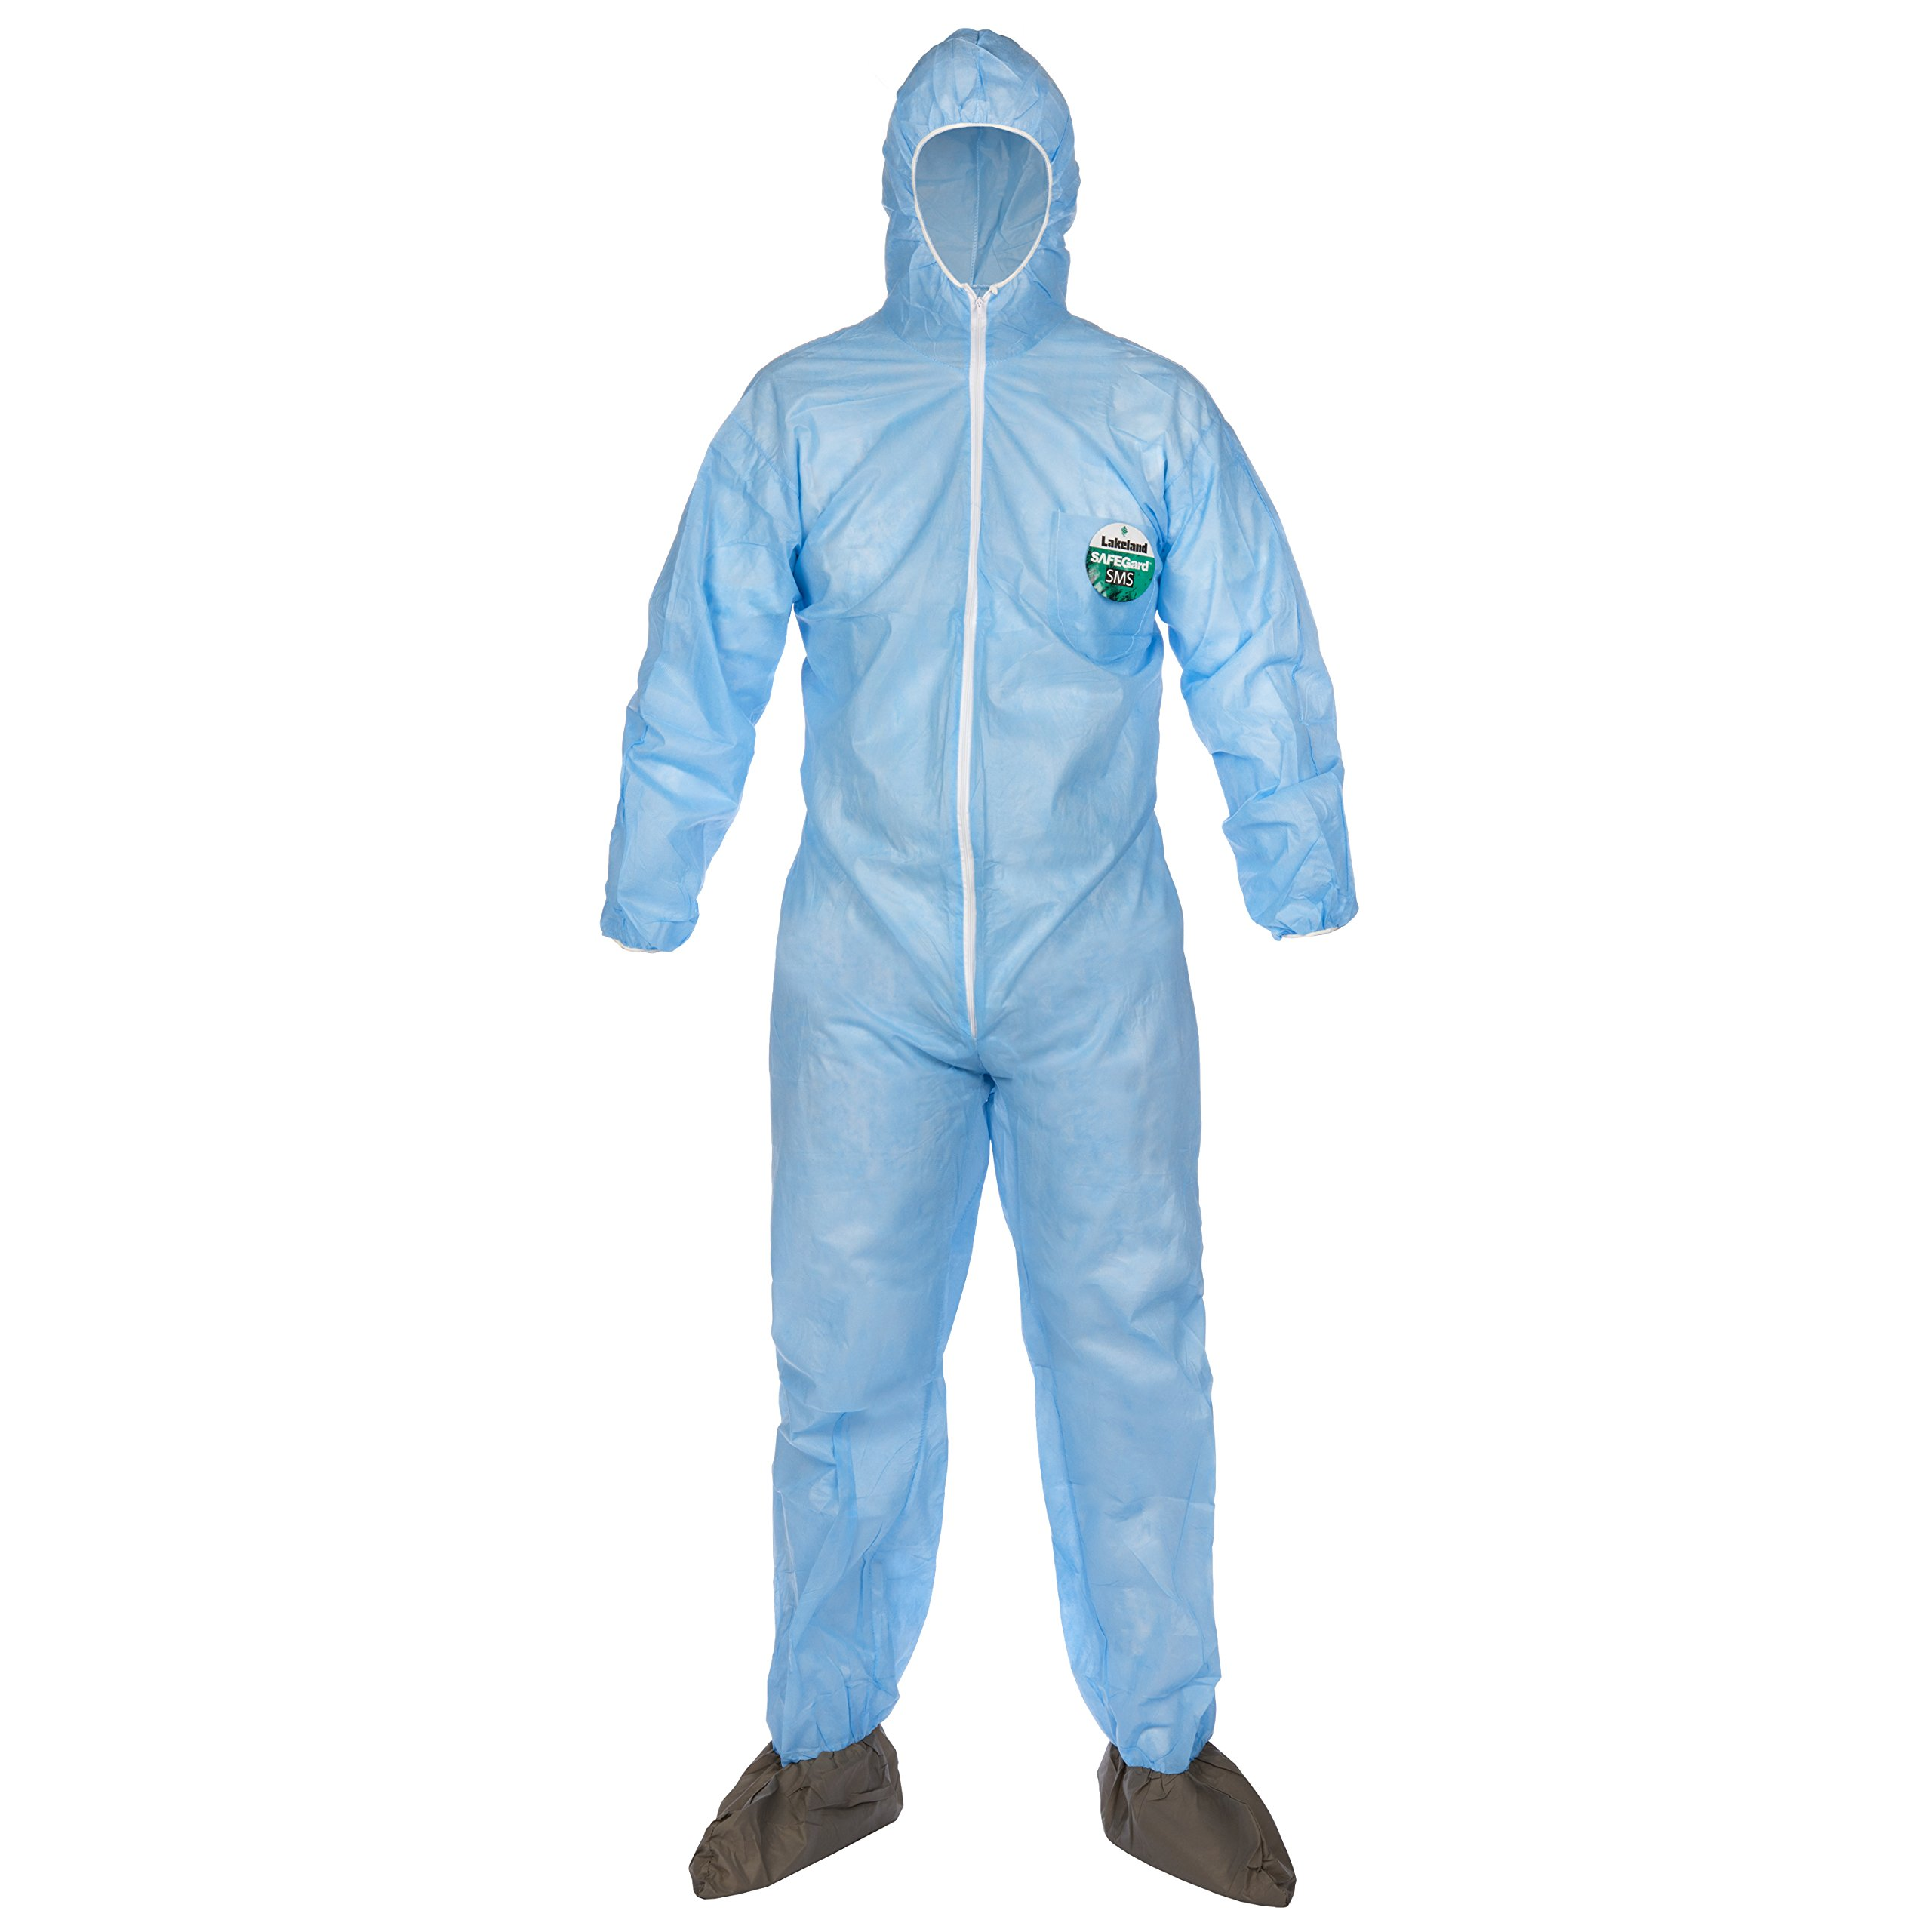 Lakeland SafeGard SMS Polypropylene Coverall with Hood and Boots, Disposable, Elastic Cuff, Small, Sky Blue (Case of 25)